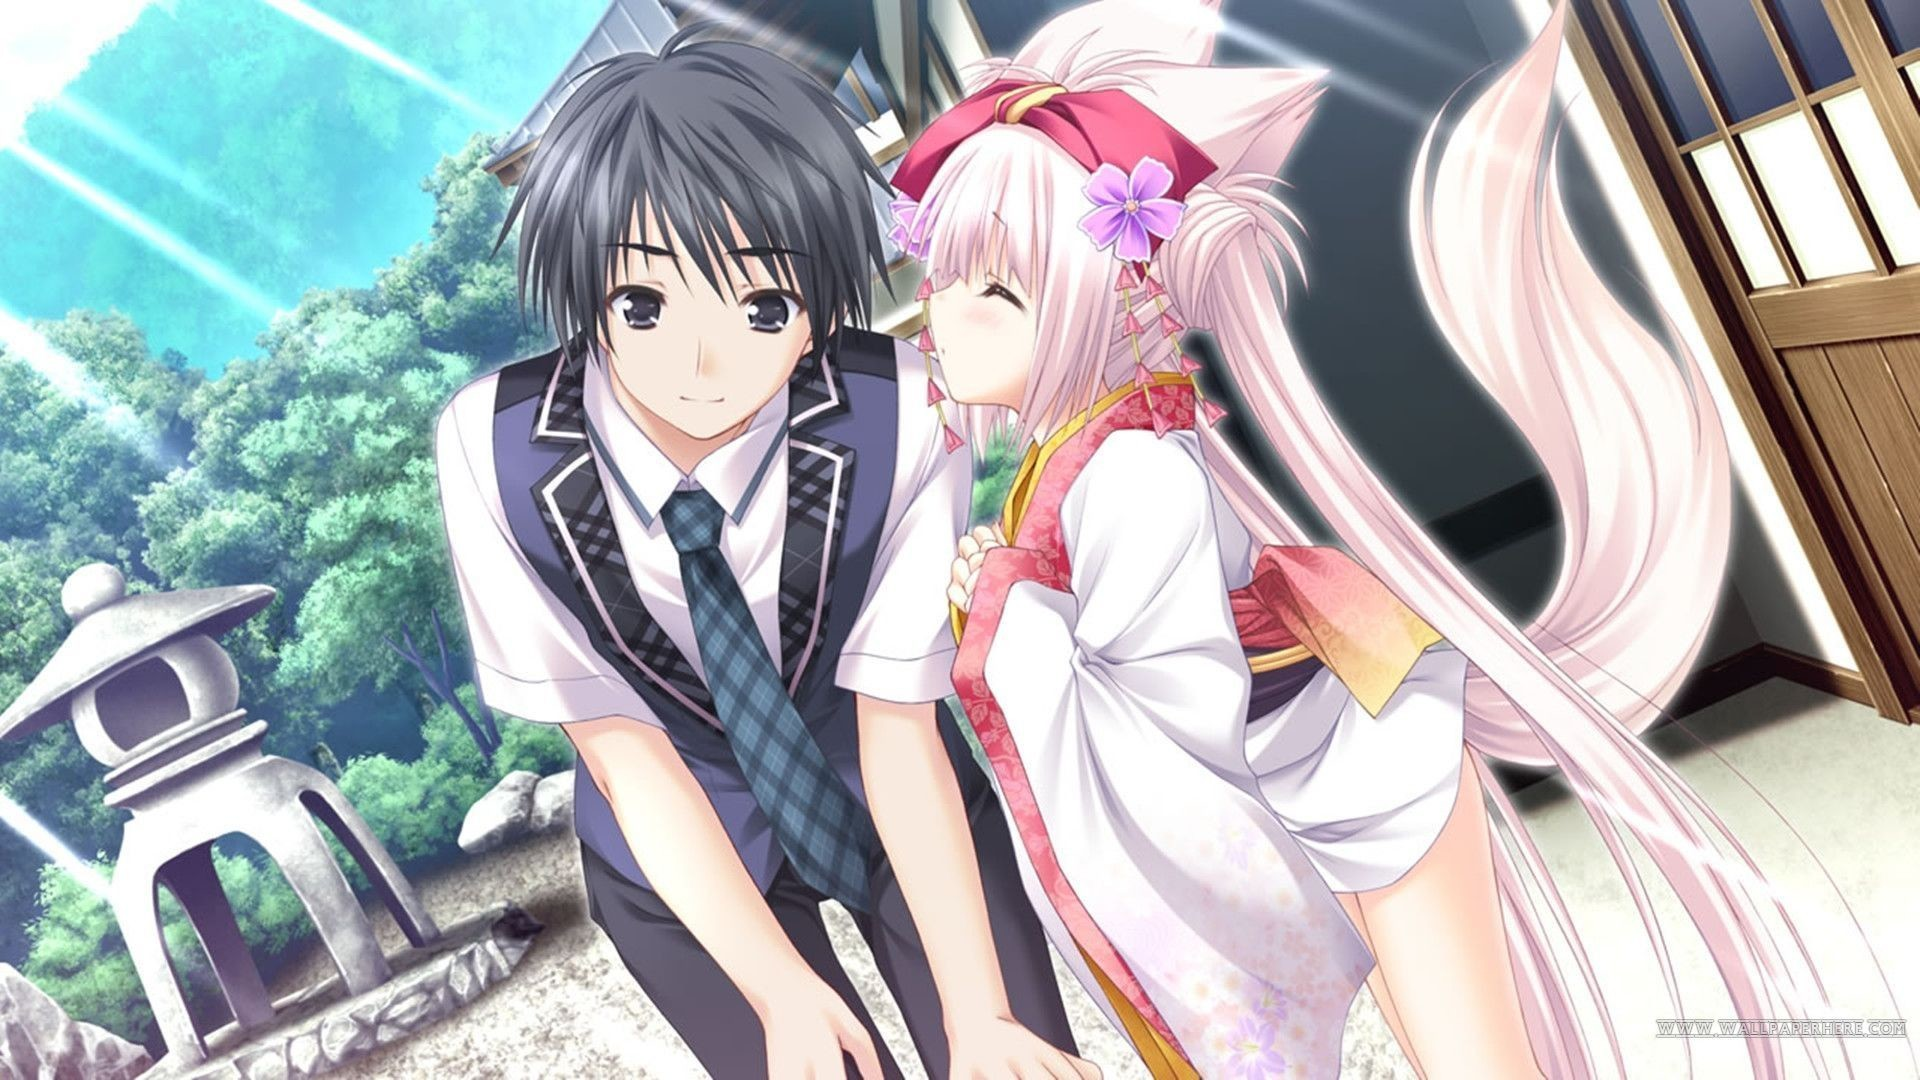 Res: 1920x1080, wallpaper.wiki-Free-Download-Cute-Anime-Couple-Wallpaper-